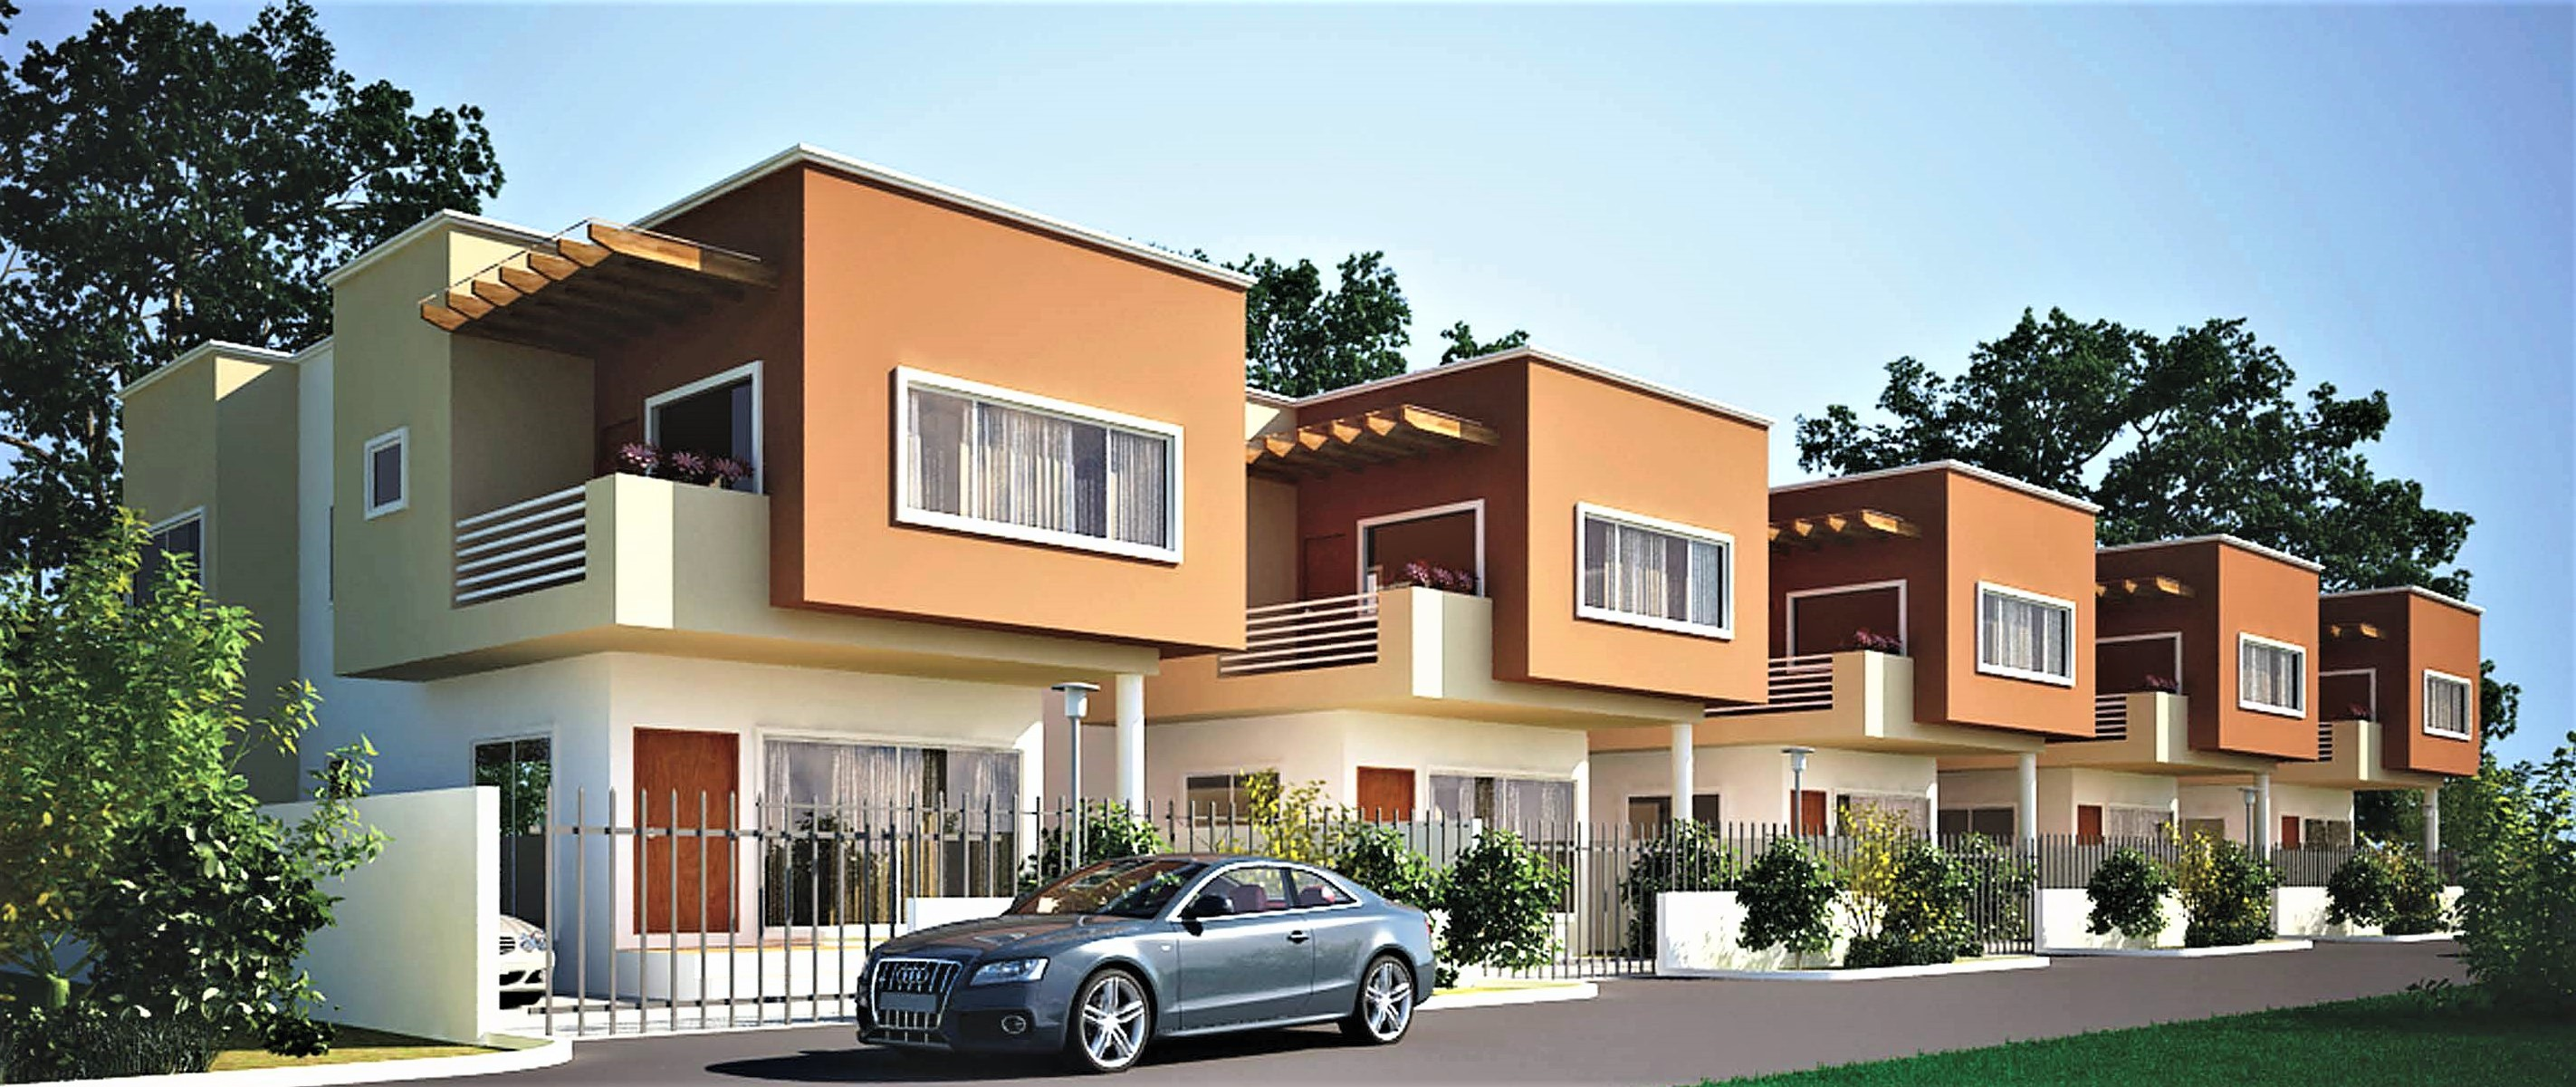 Premier homes 3 bedrooms townhouse abelemkpe for 2 bedroom townhouse